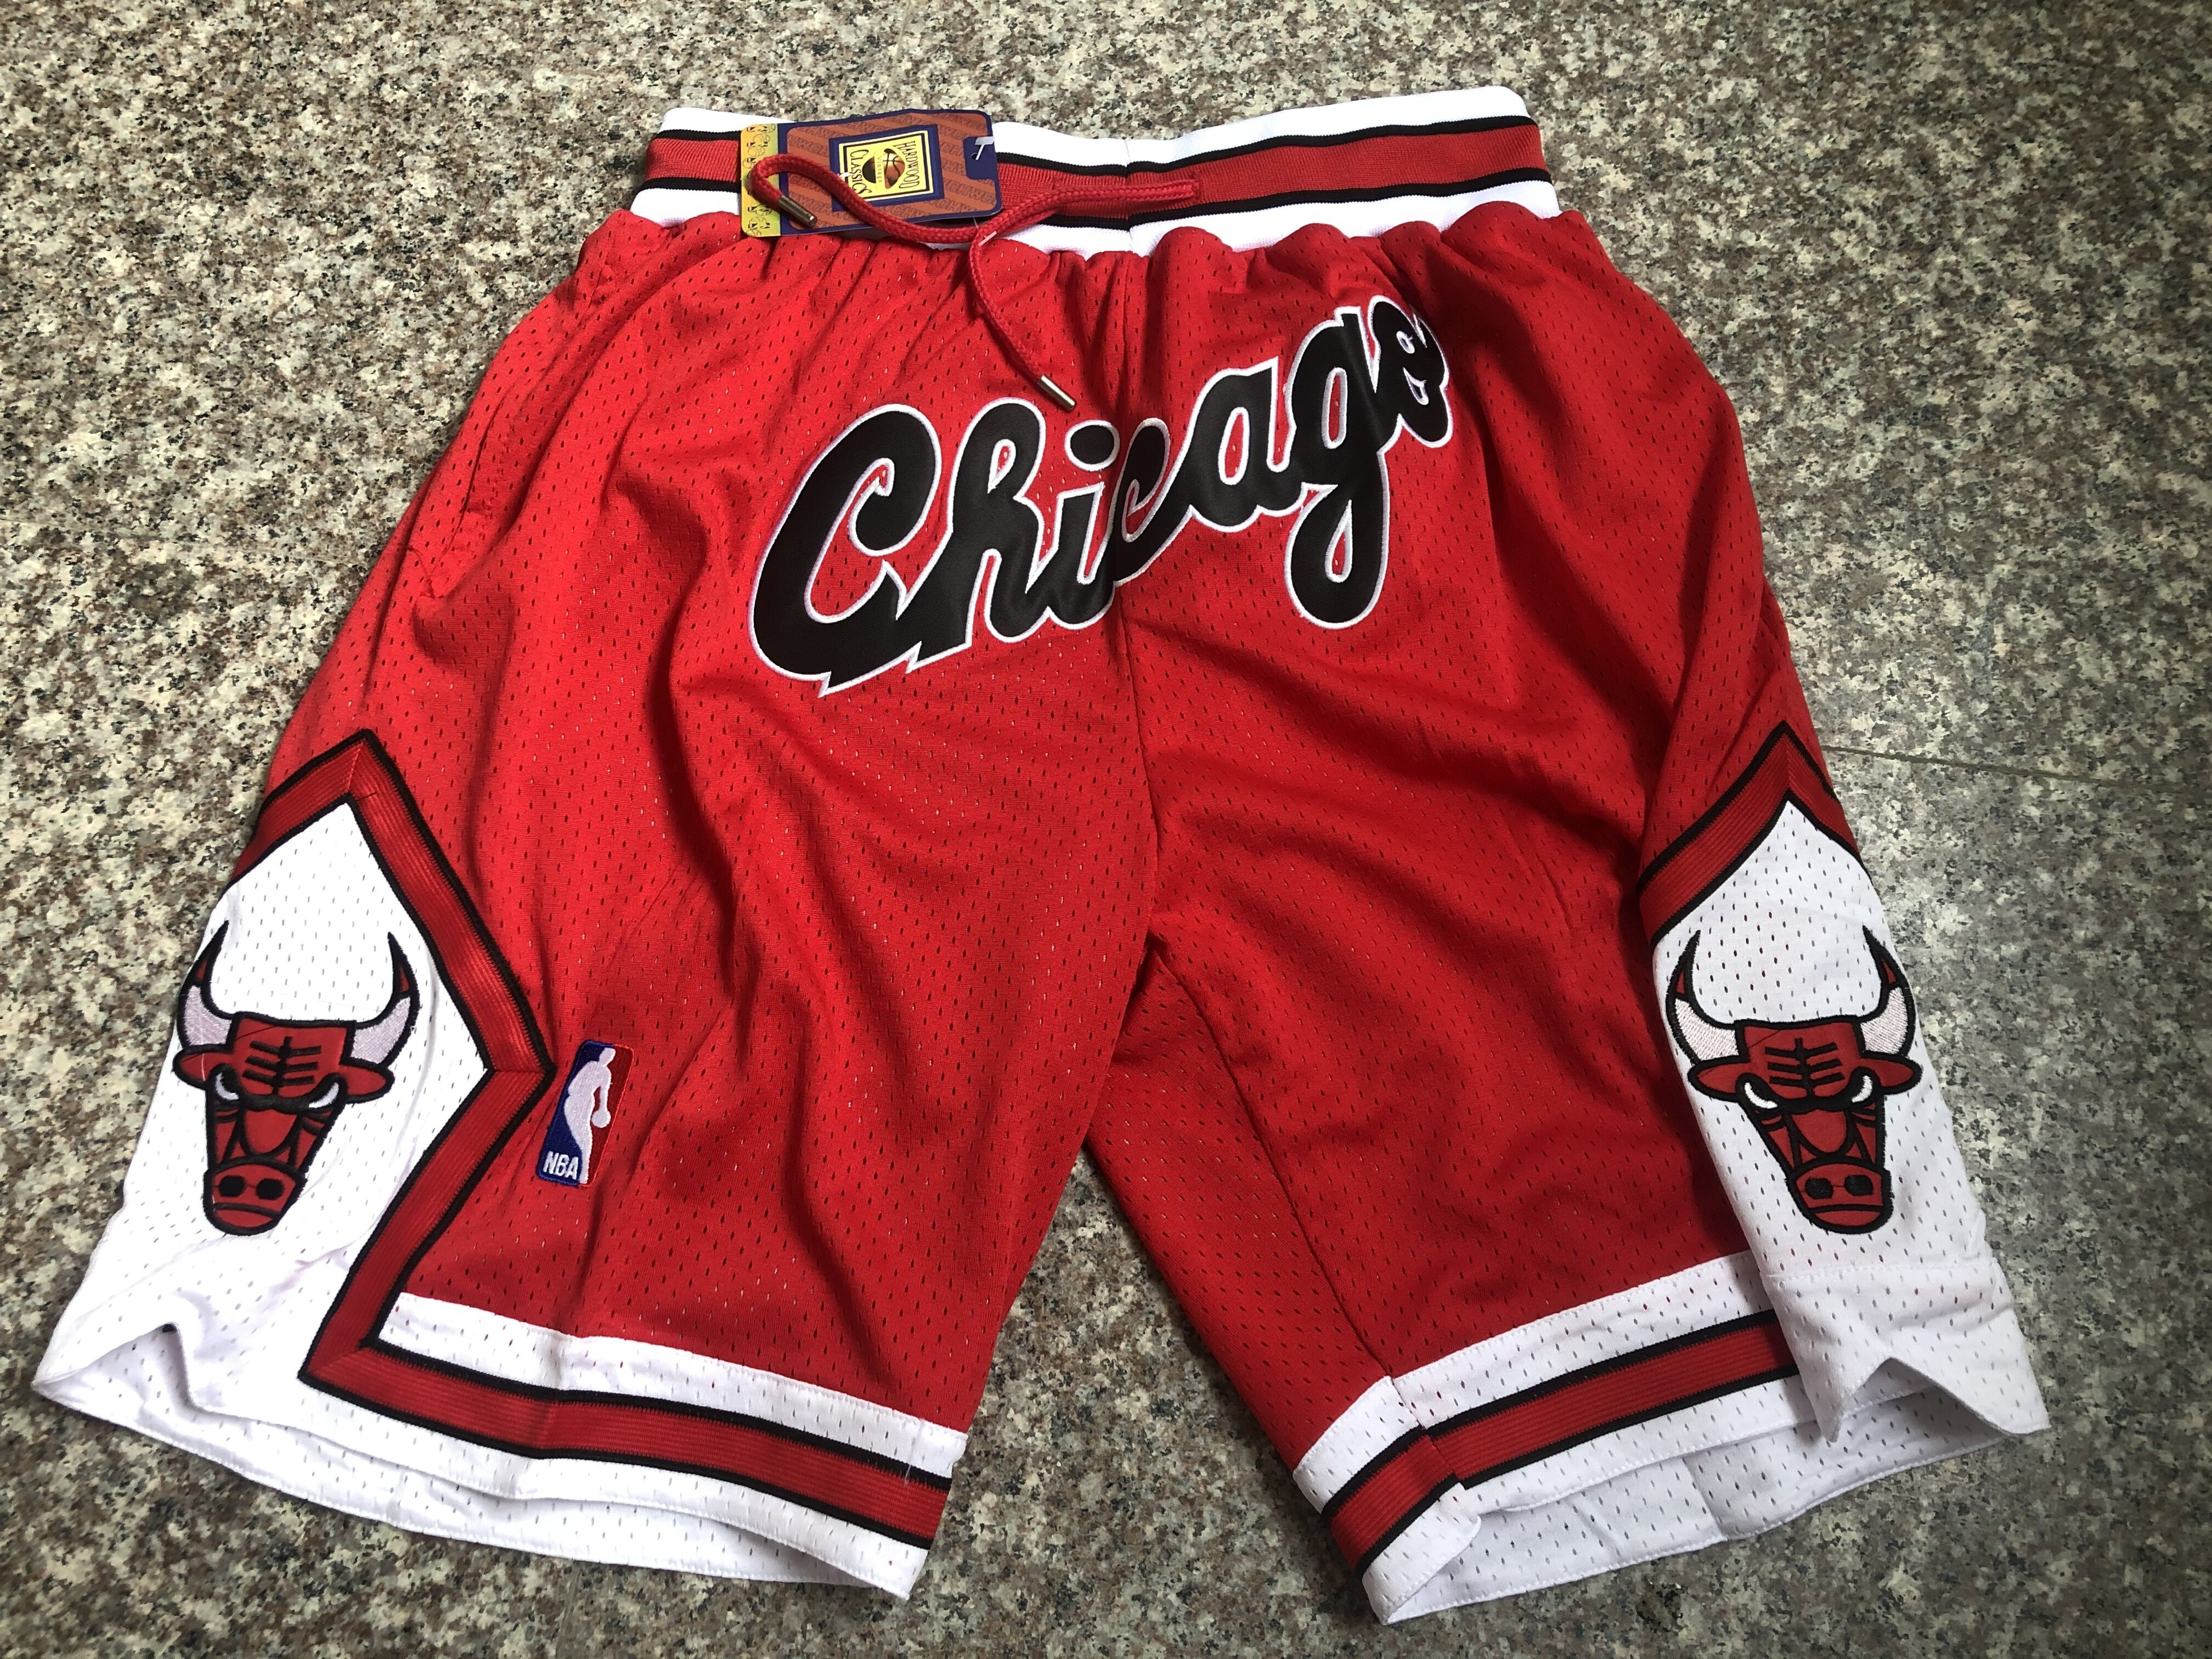 2020 Men NBA Chicago Bulls red shorts style 5